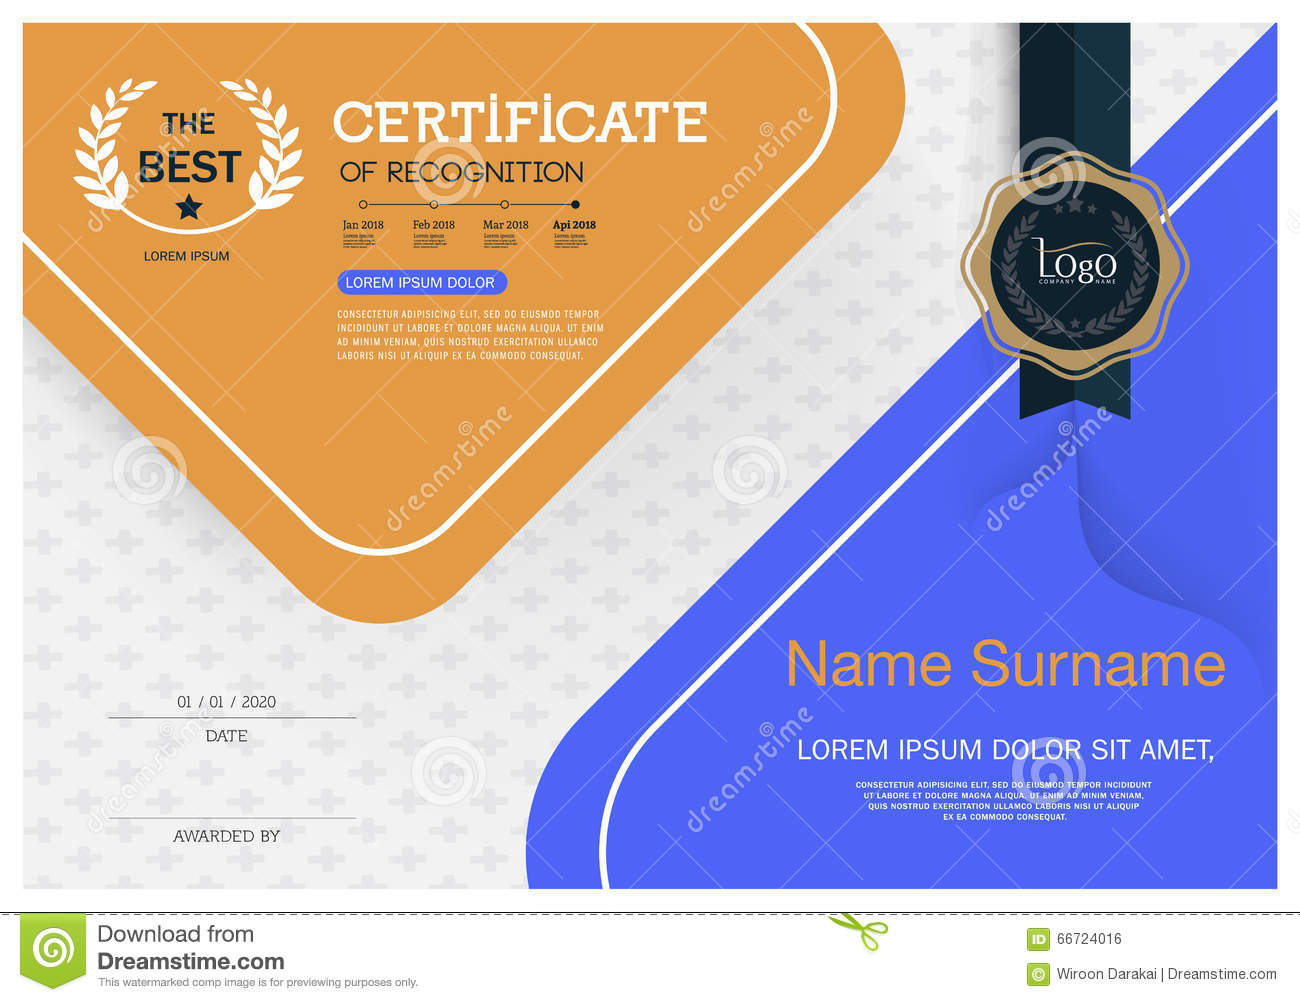 Certificate of achievement frame design template layout template in A4 size